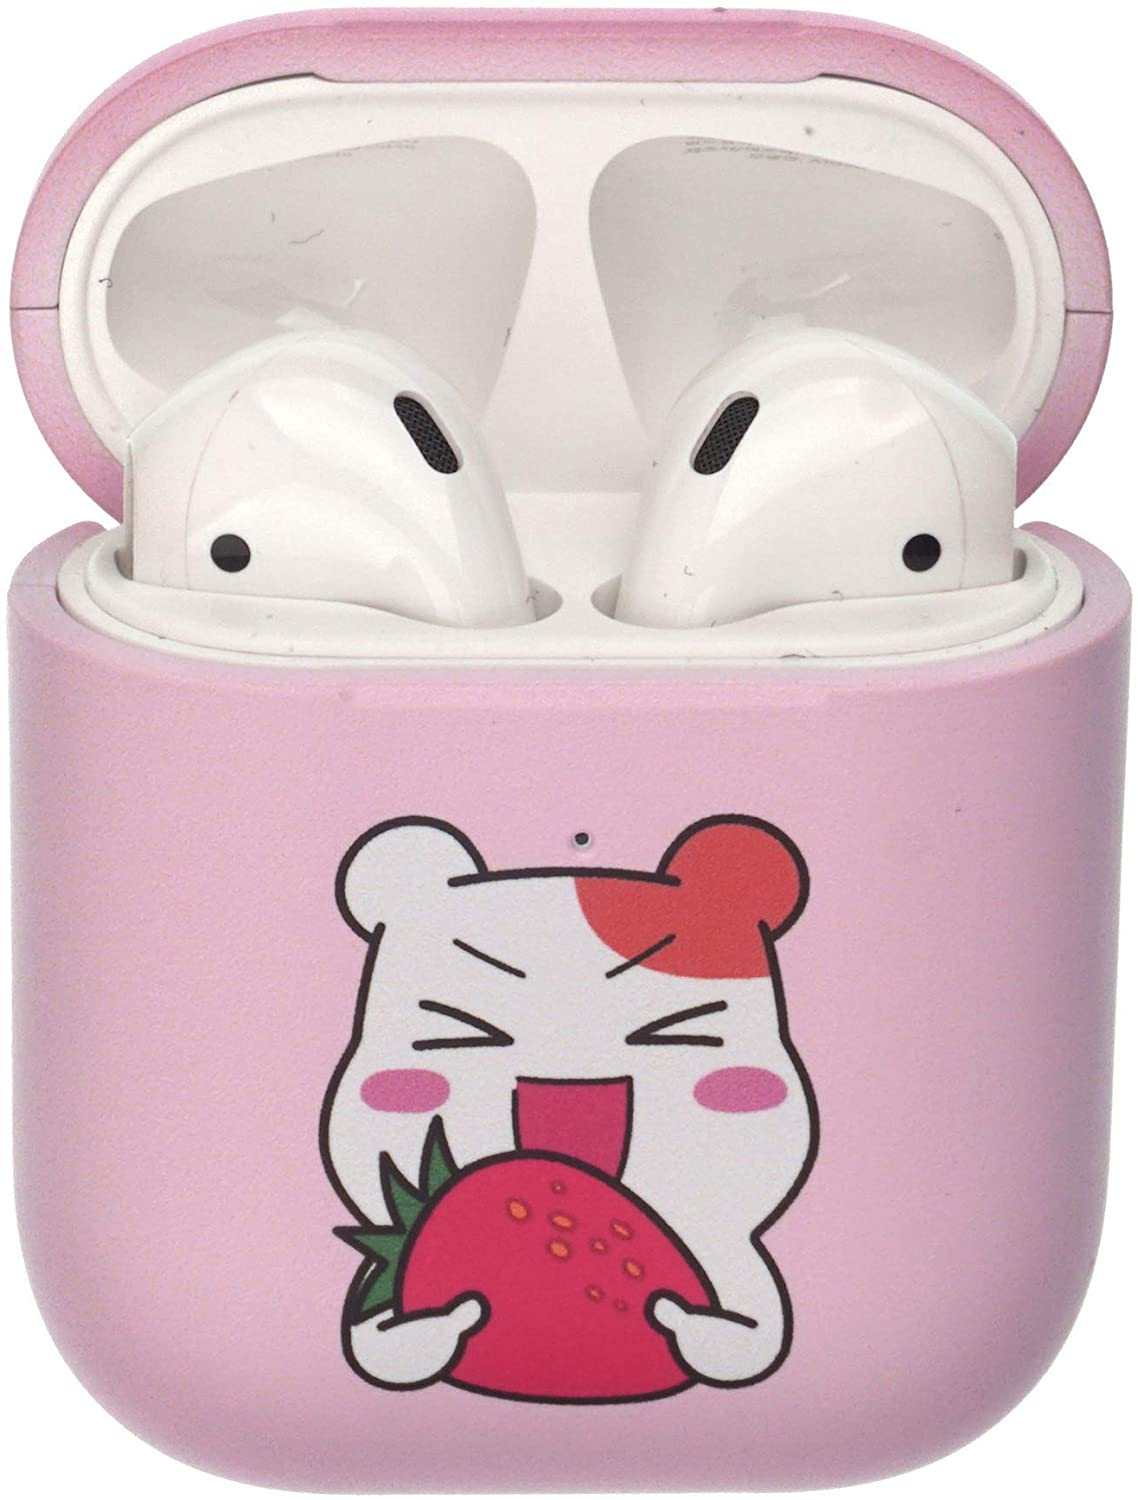 ORUCHUBAN EBICHU AirPods Case Protective Hard PC Shell Cute Cover [Front LED Visible] Accessories Compatible with Apple Airpods 1 & AirPods 2 - Fruit Ebichu Strawberry